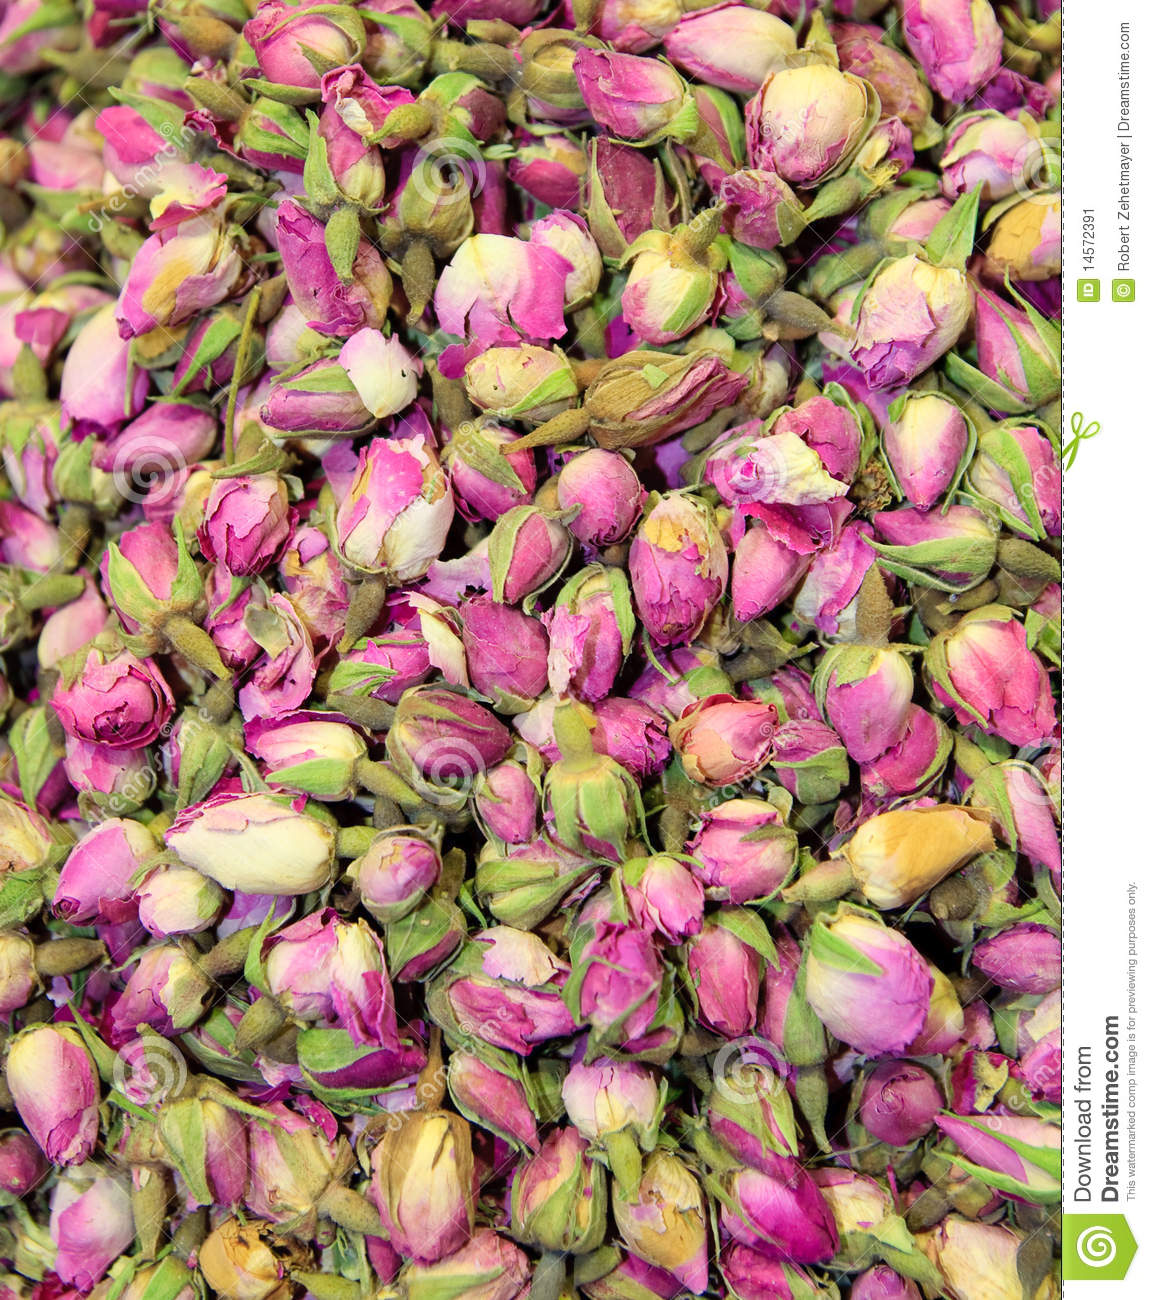 Rose Petal Tea Stock Image - Image: 14572391